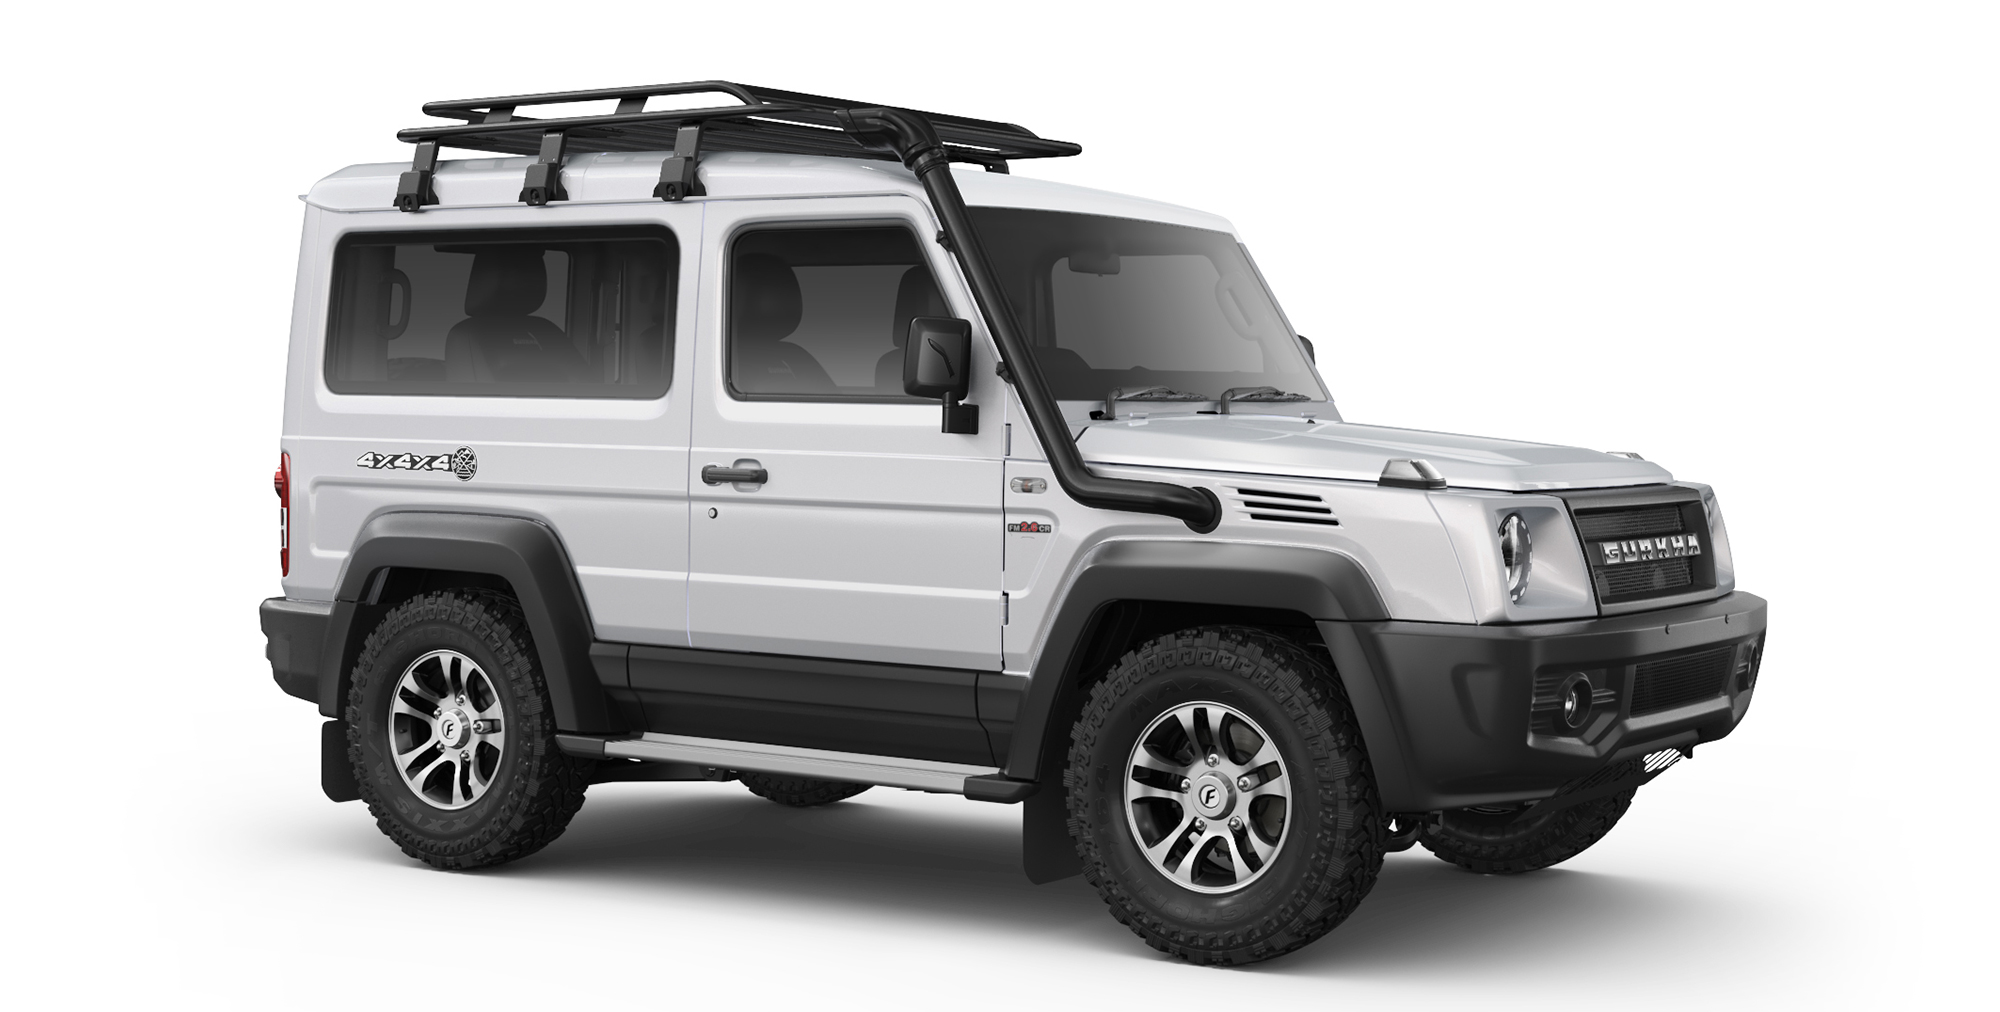 White Colour Force Gurkha 4x4x4 with Alloy Wheels and AT Tyres